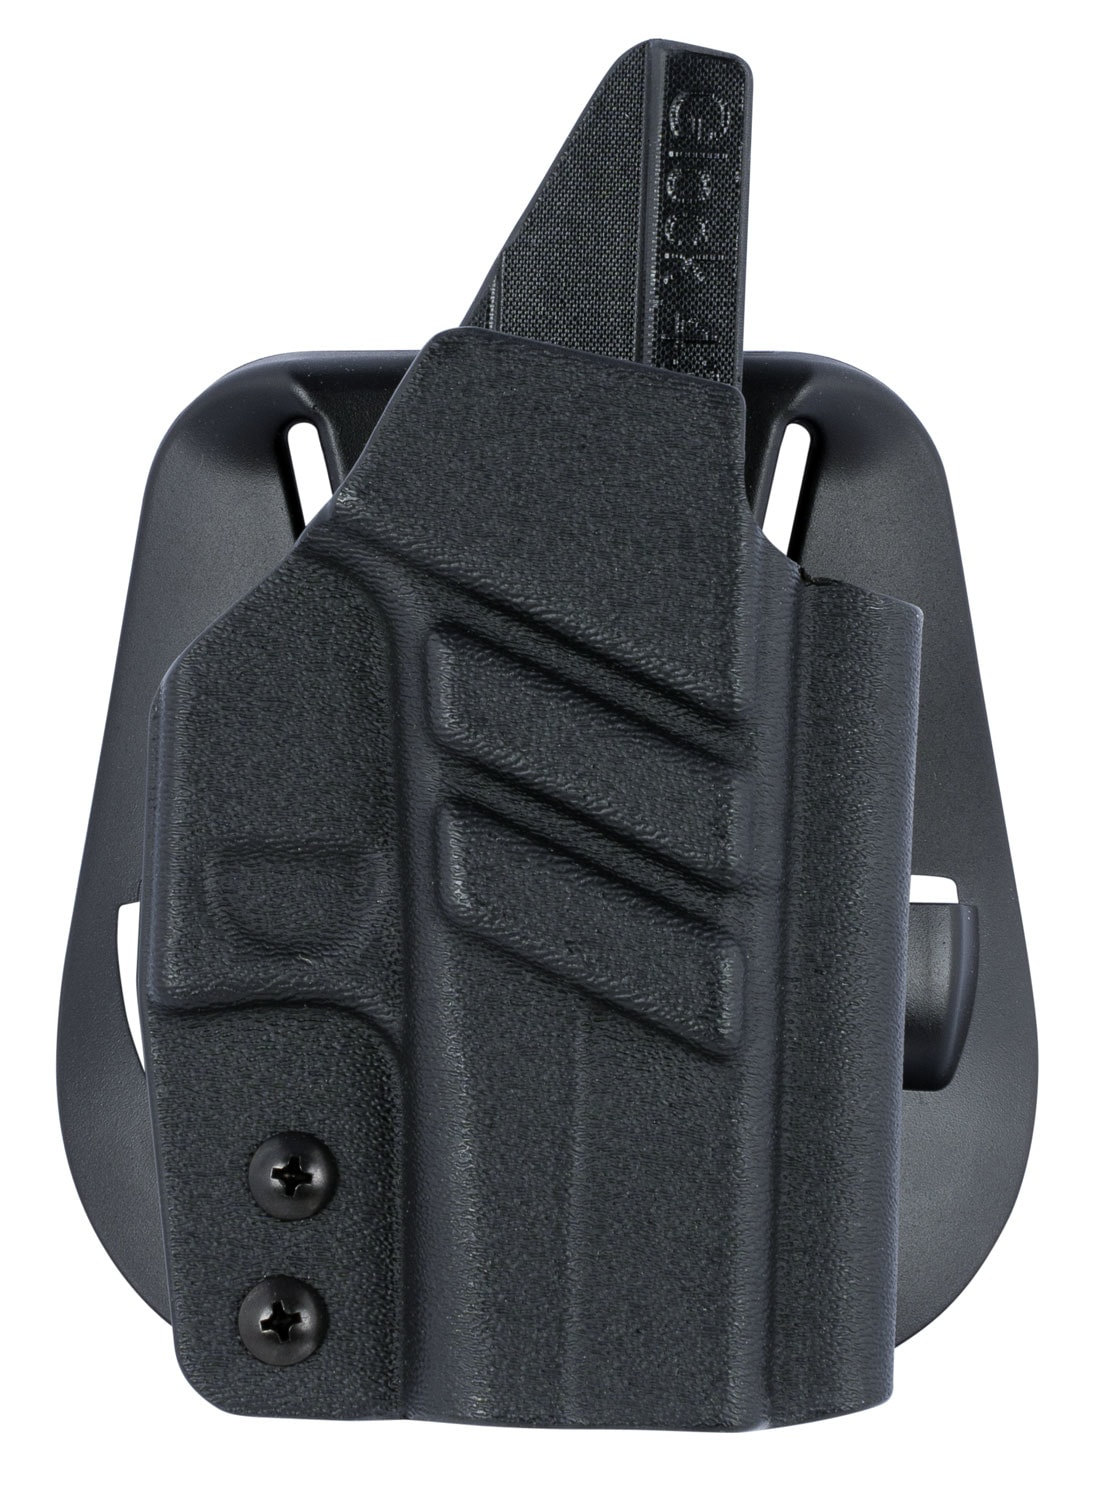 1791 GUNLEATHER TACTICAL OWB KYDEX PADDLE